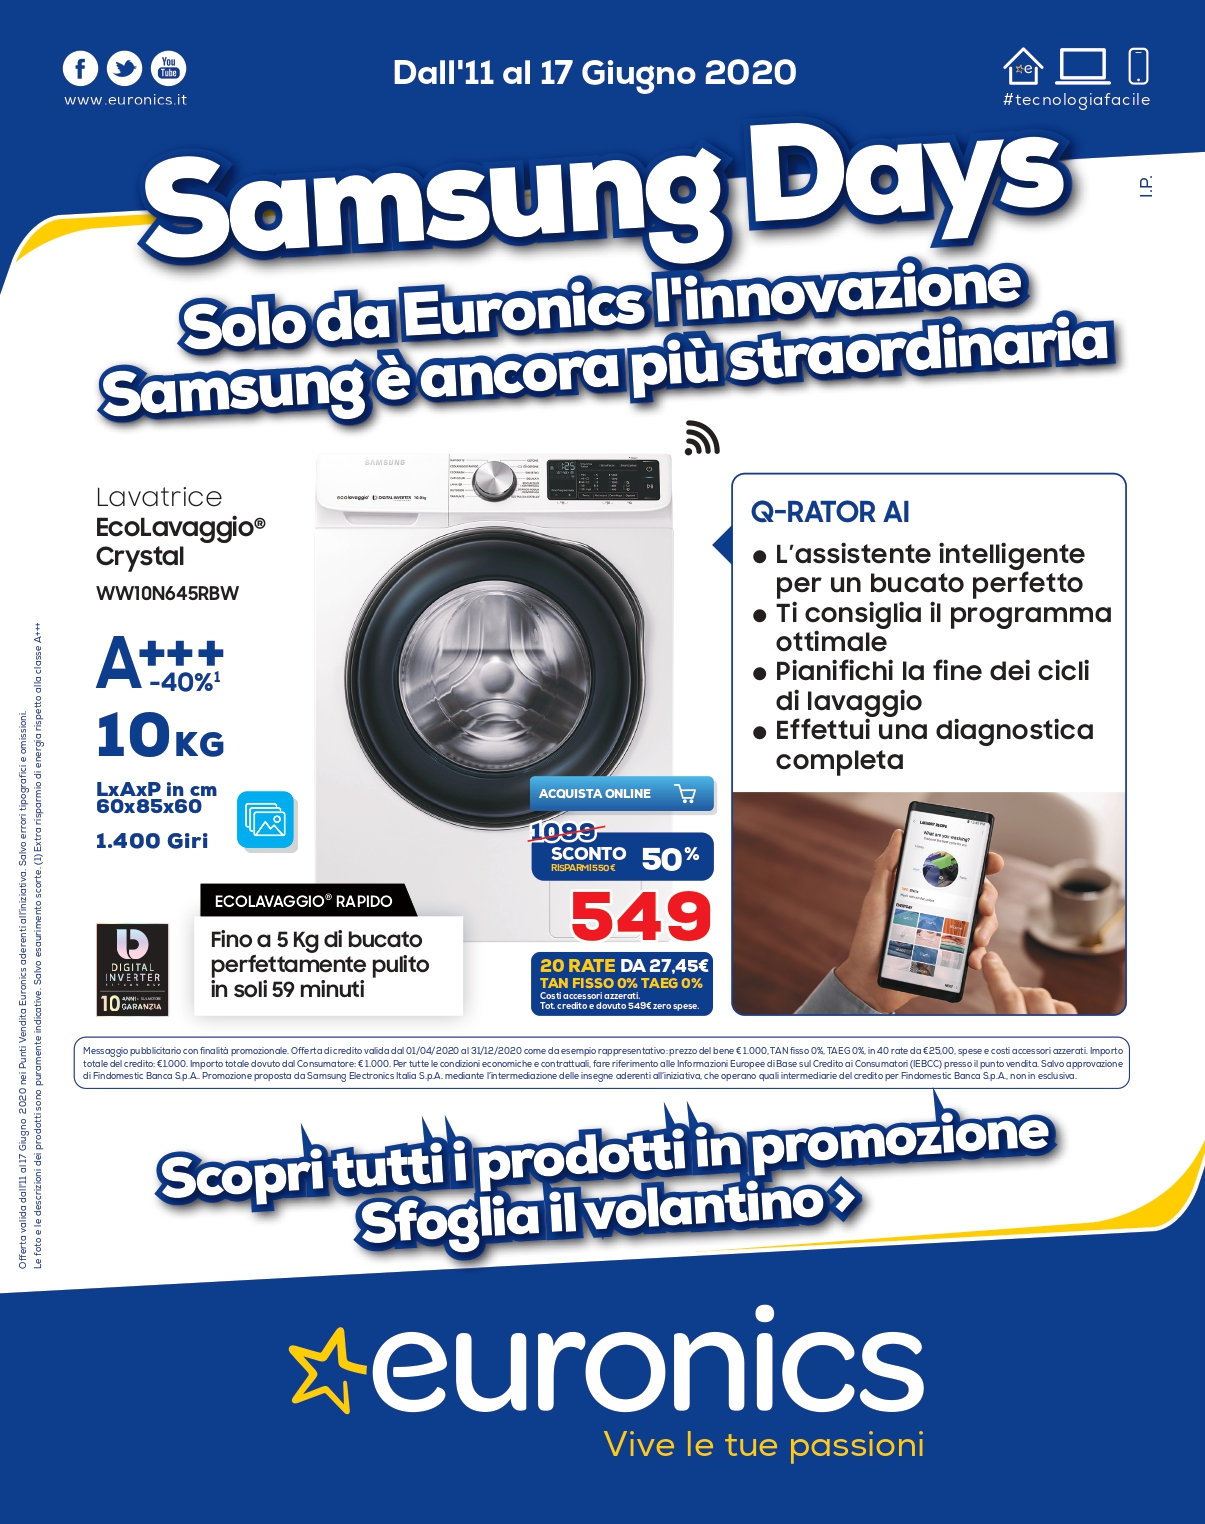 euronics offerte samsung days